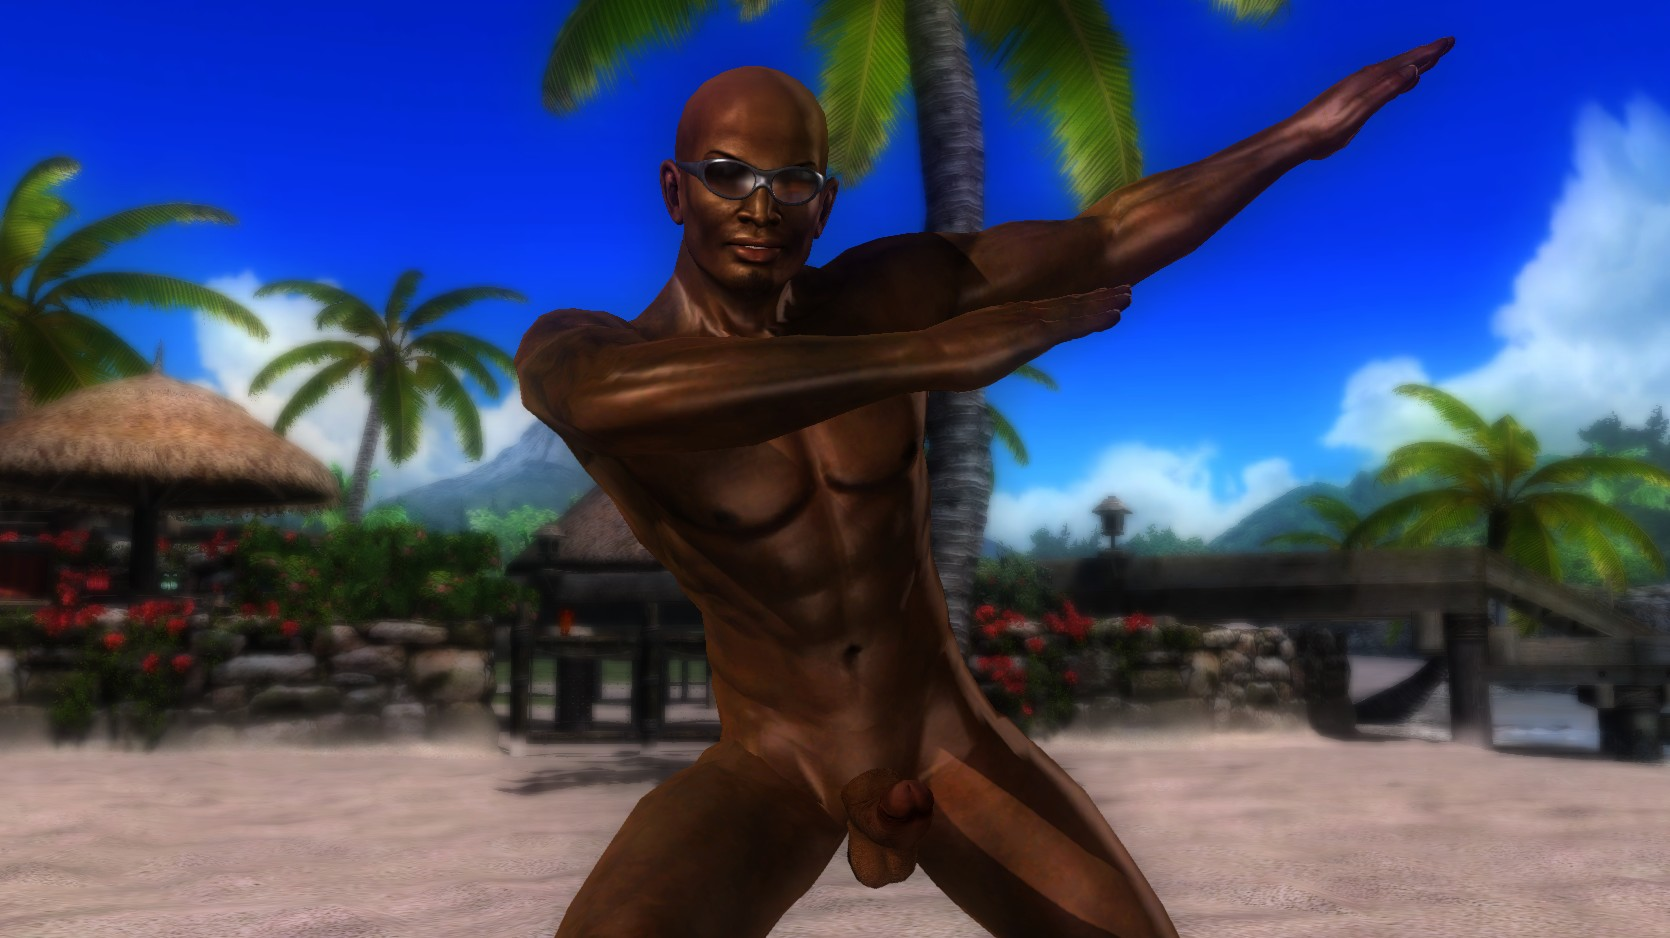 Far cry nude skin mods nude scene